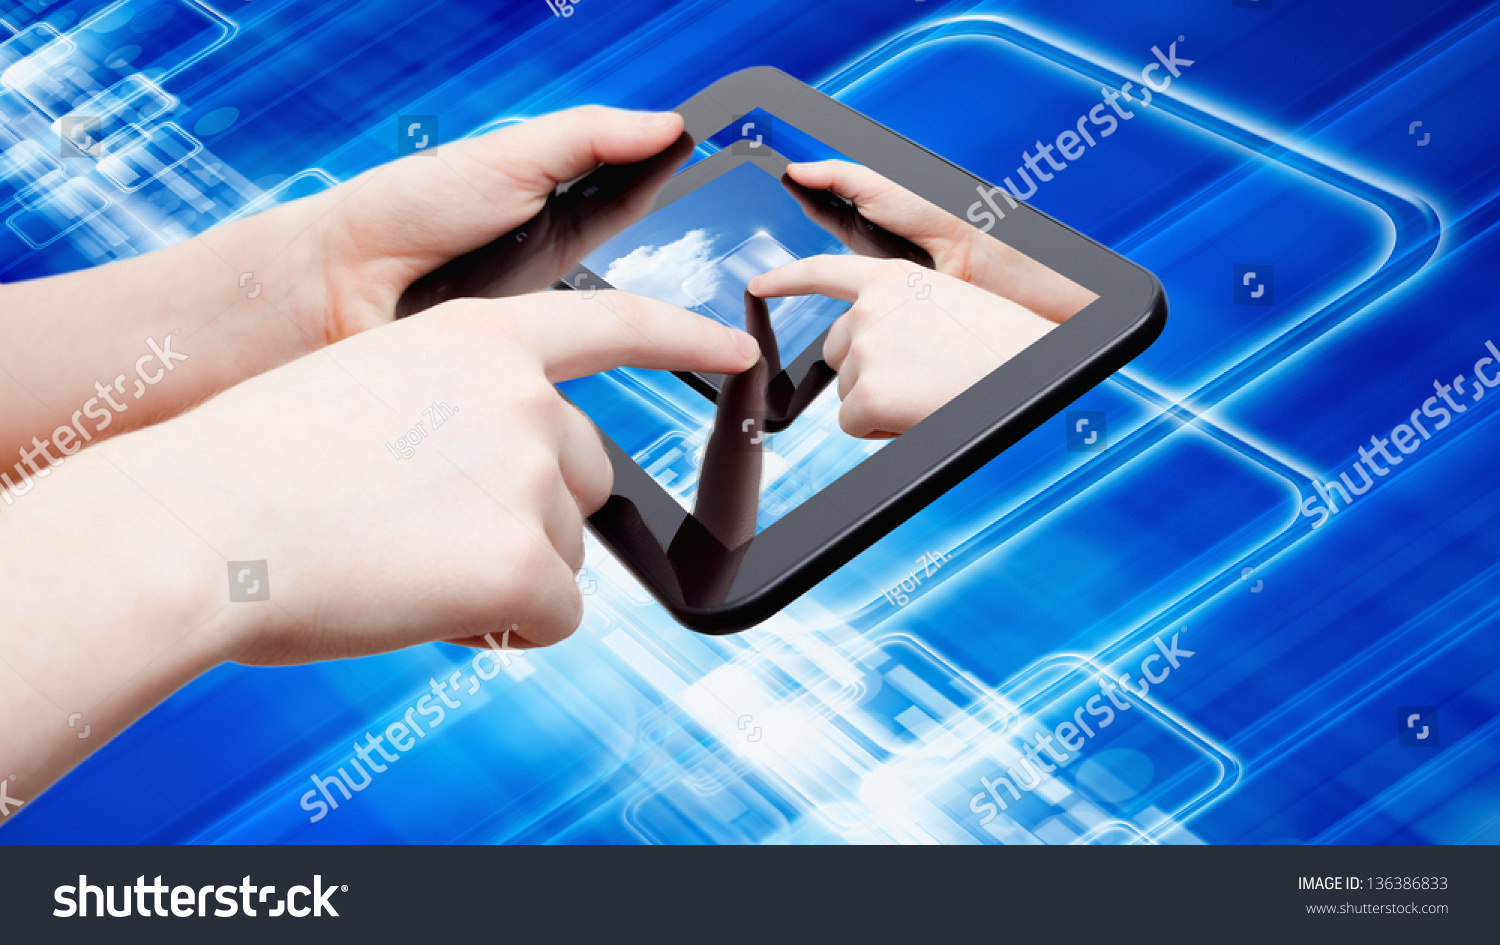 information technology gadgets information technology background abstract tablet 22597